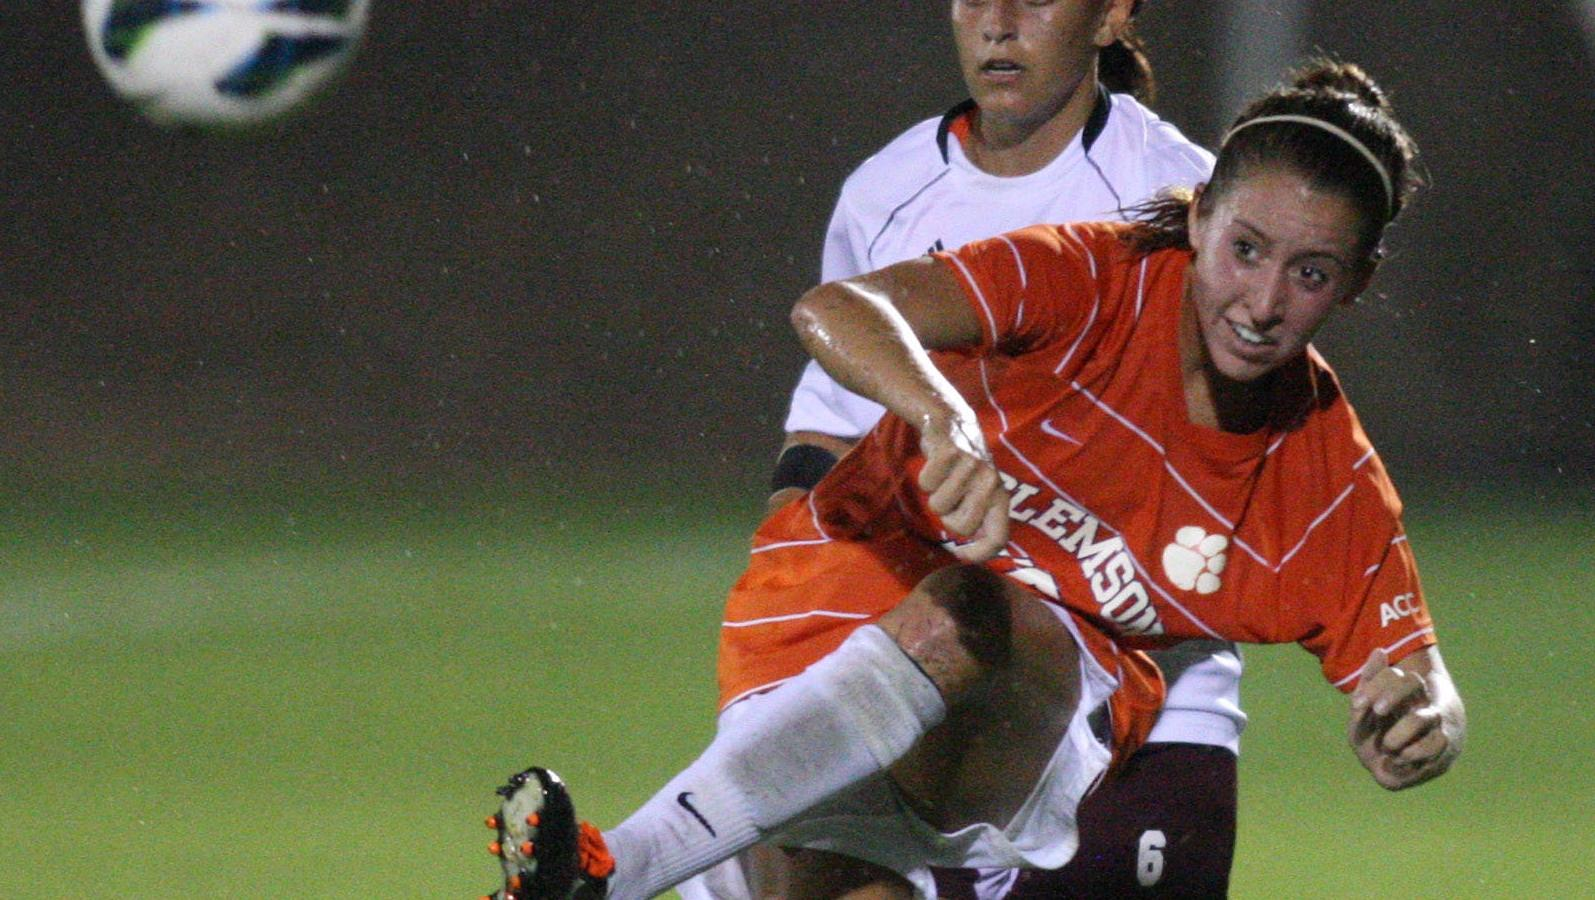 Tigers Defeat Winthrop 2-1 Monday Night at Historic Riggs Field